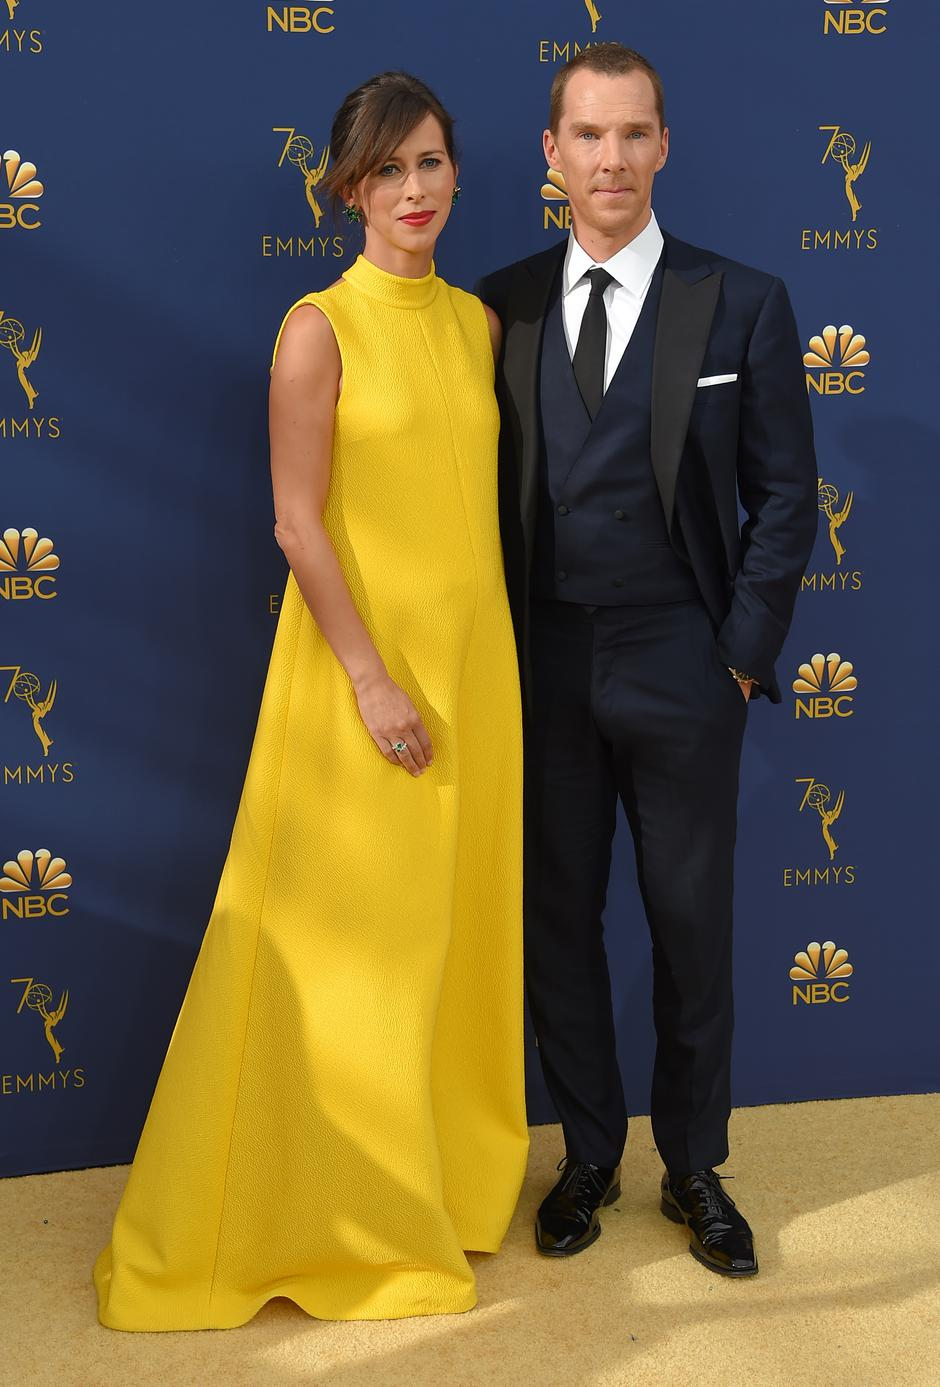 70th Emmy Awards - Arrivals - Los Angeles | Autor: OConnor-Arroyo/Press Association/PIXSELL